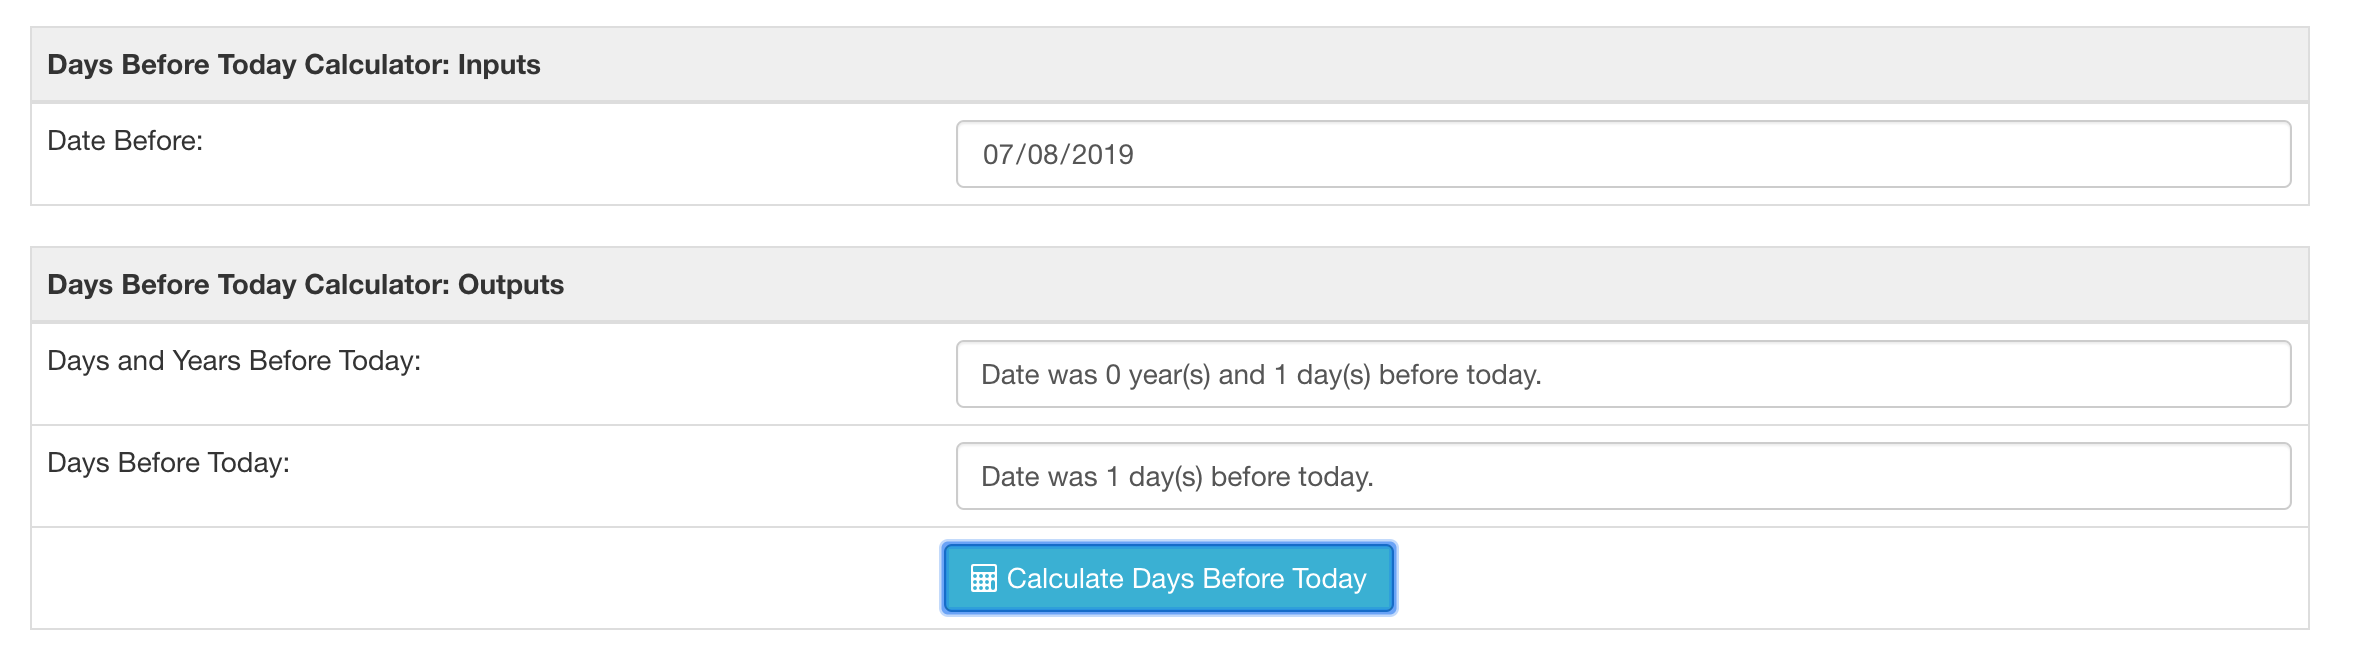 Days since date calculator result for July 8, 2019 start run on July 9, 2019.